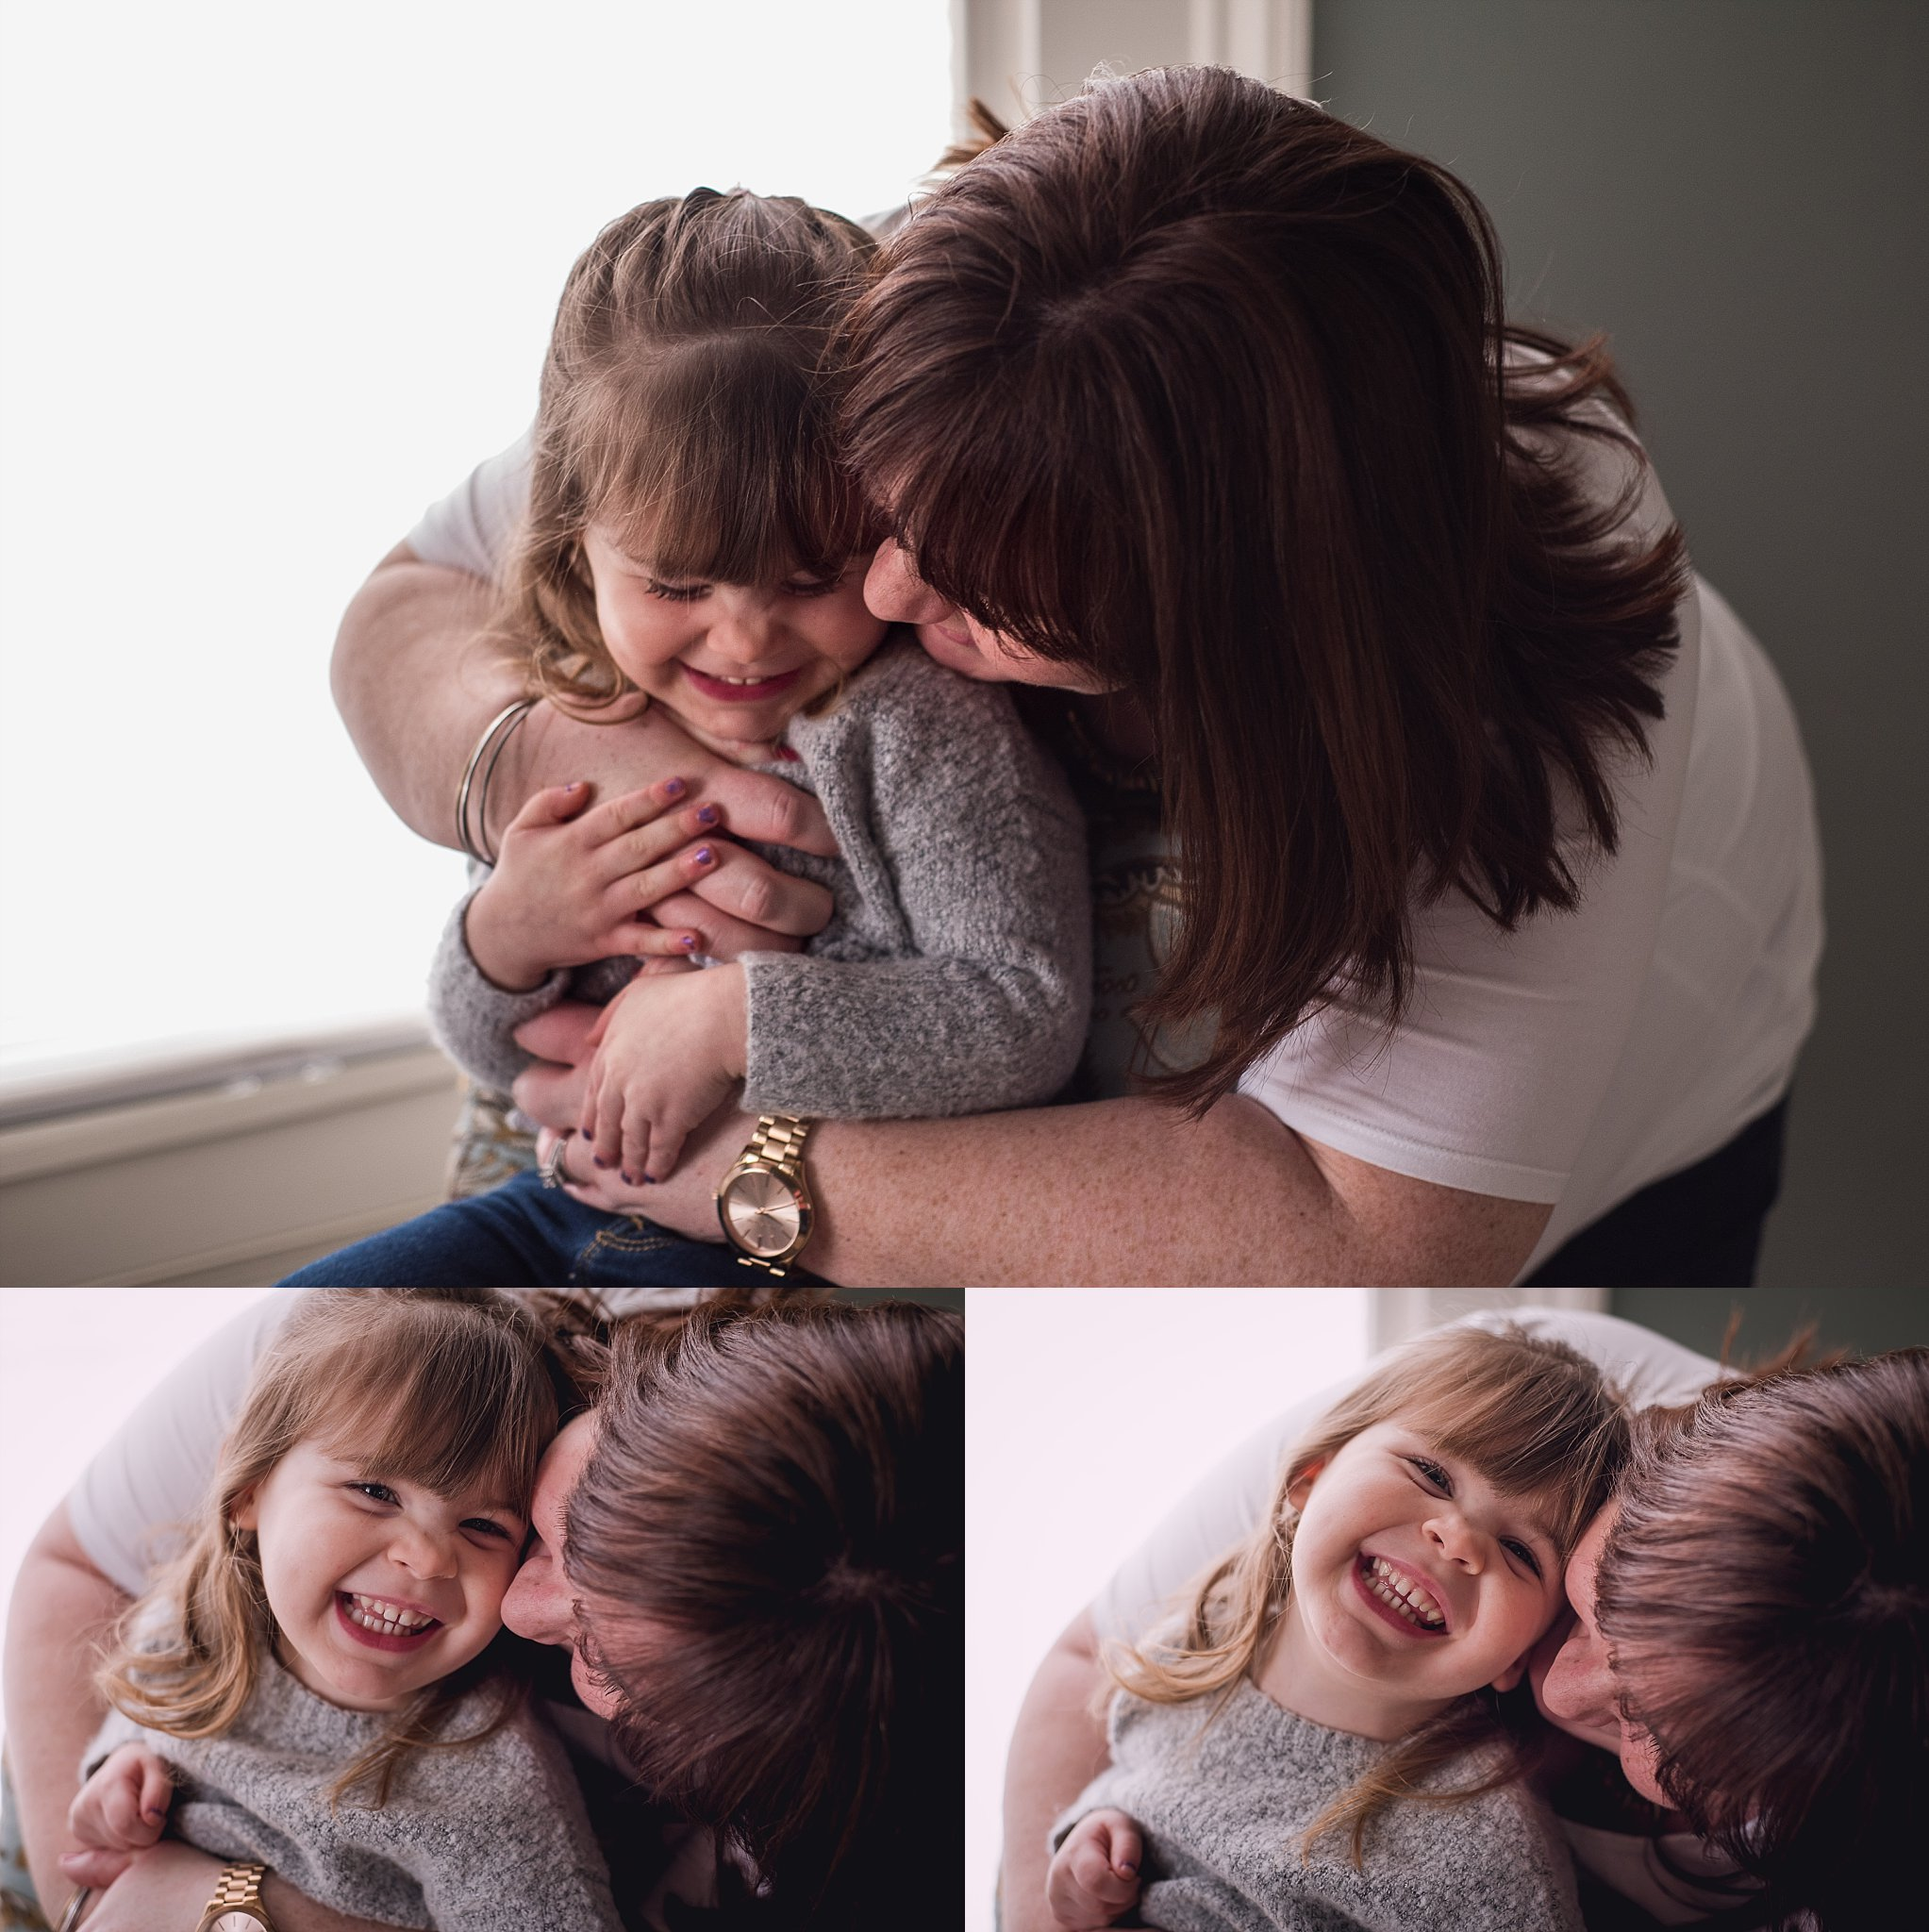 Child laughs with mom during lifestyle session with family photographer Brittney Hogue.